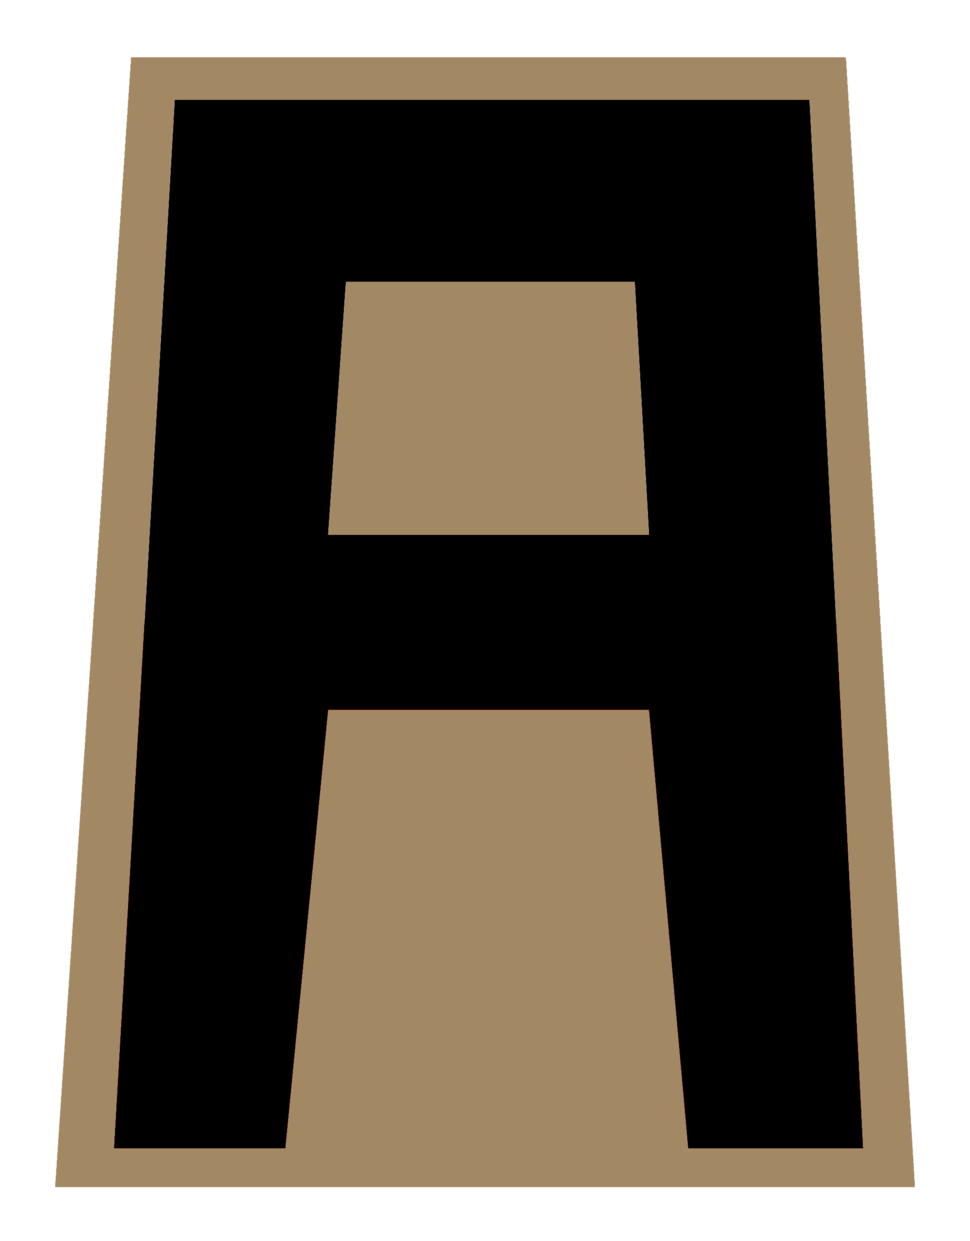 US Army 1st Army SSI Prior to 1950